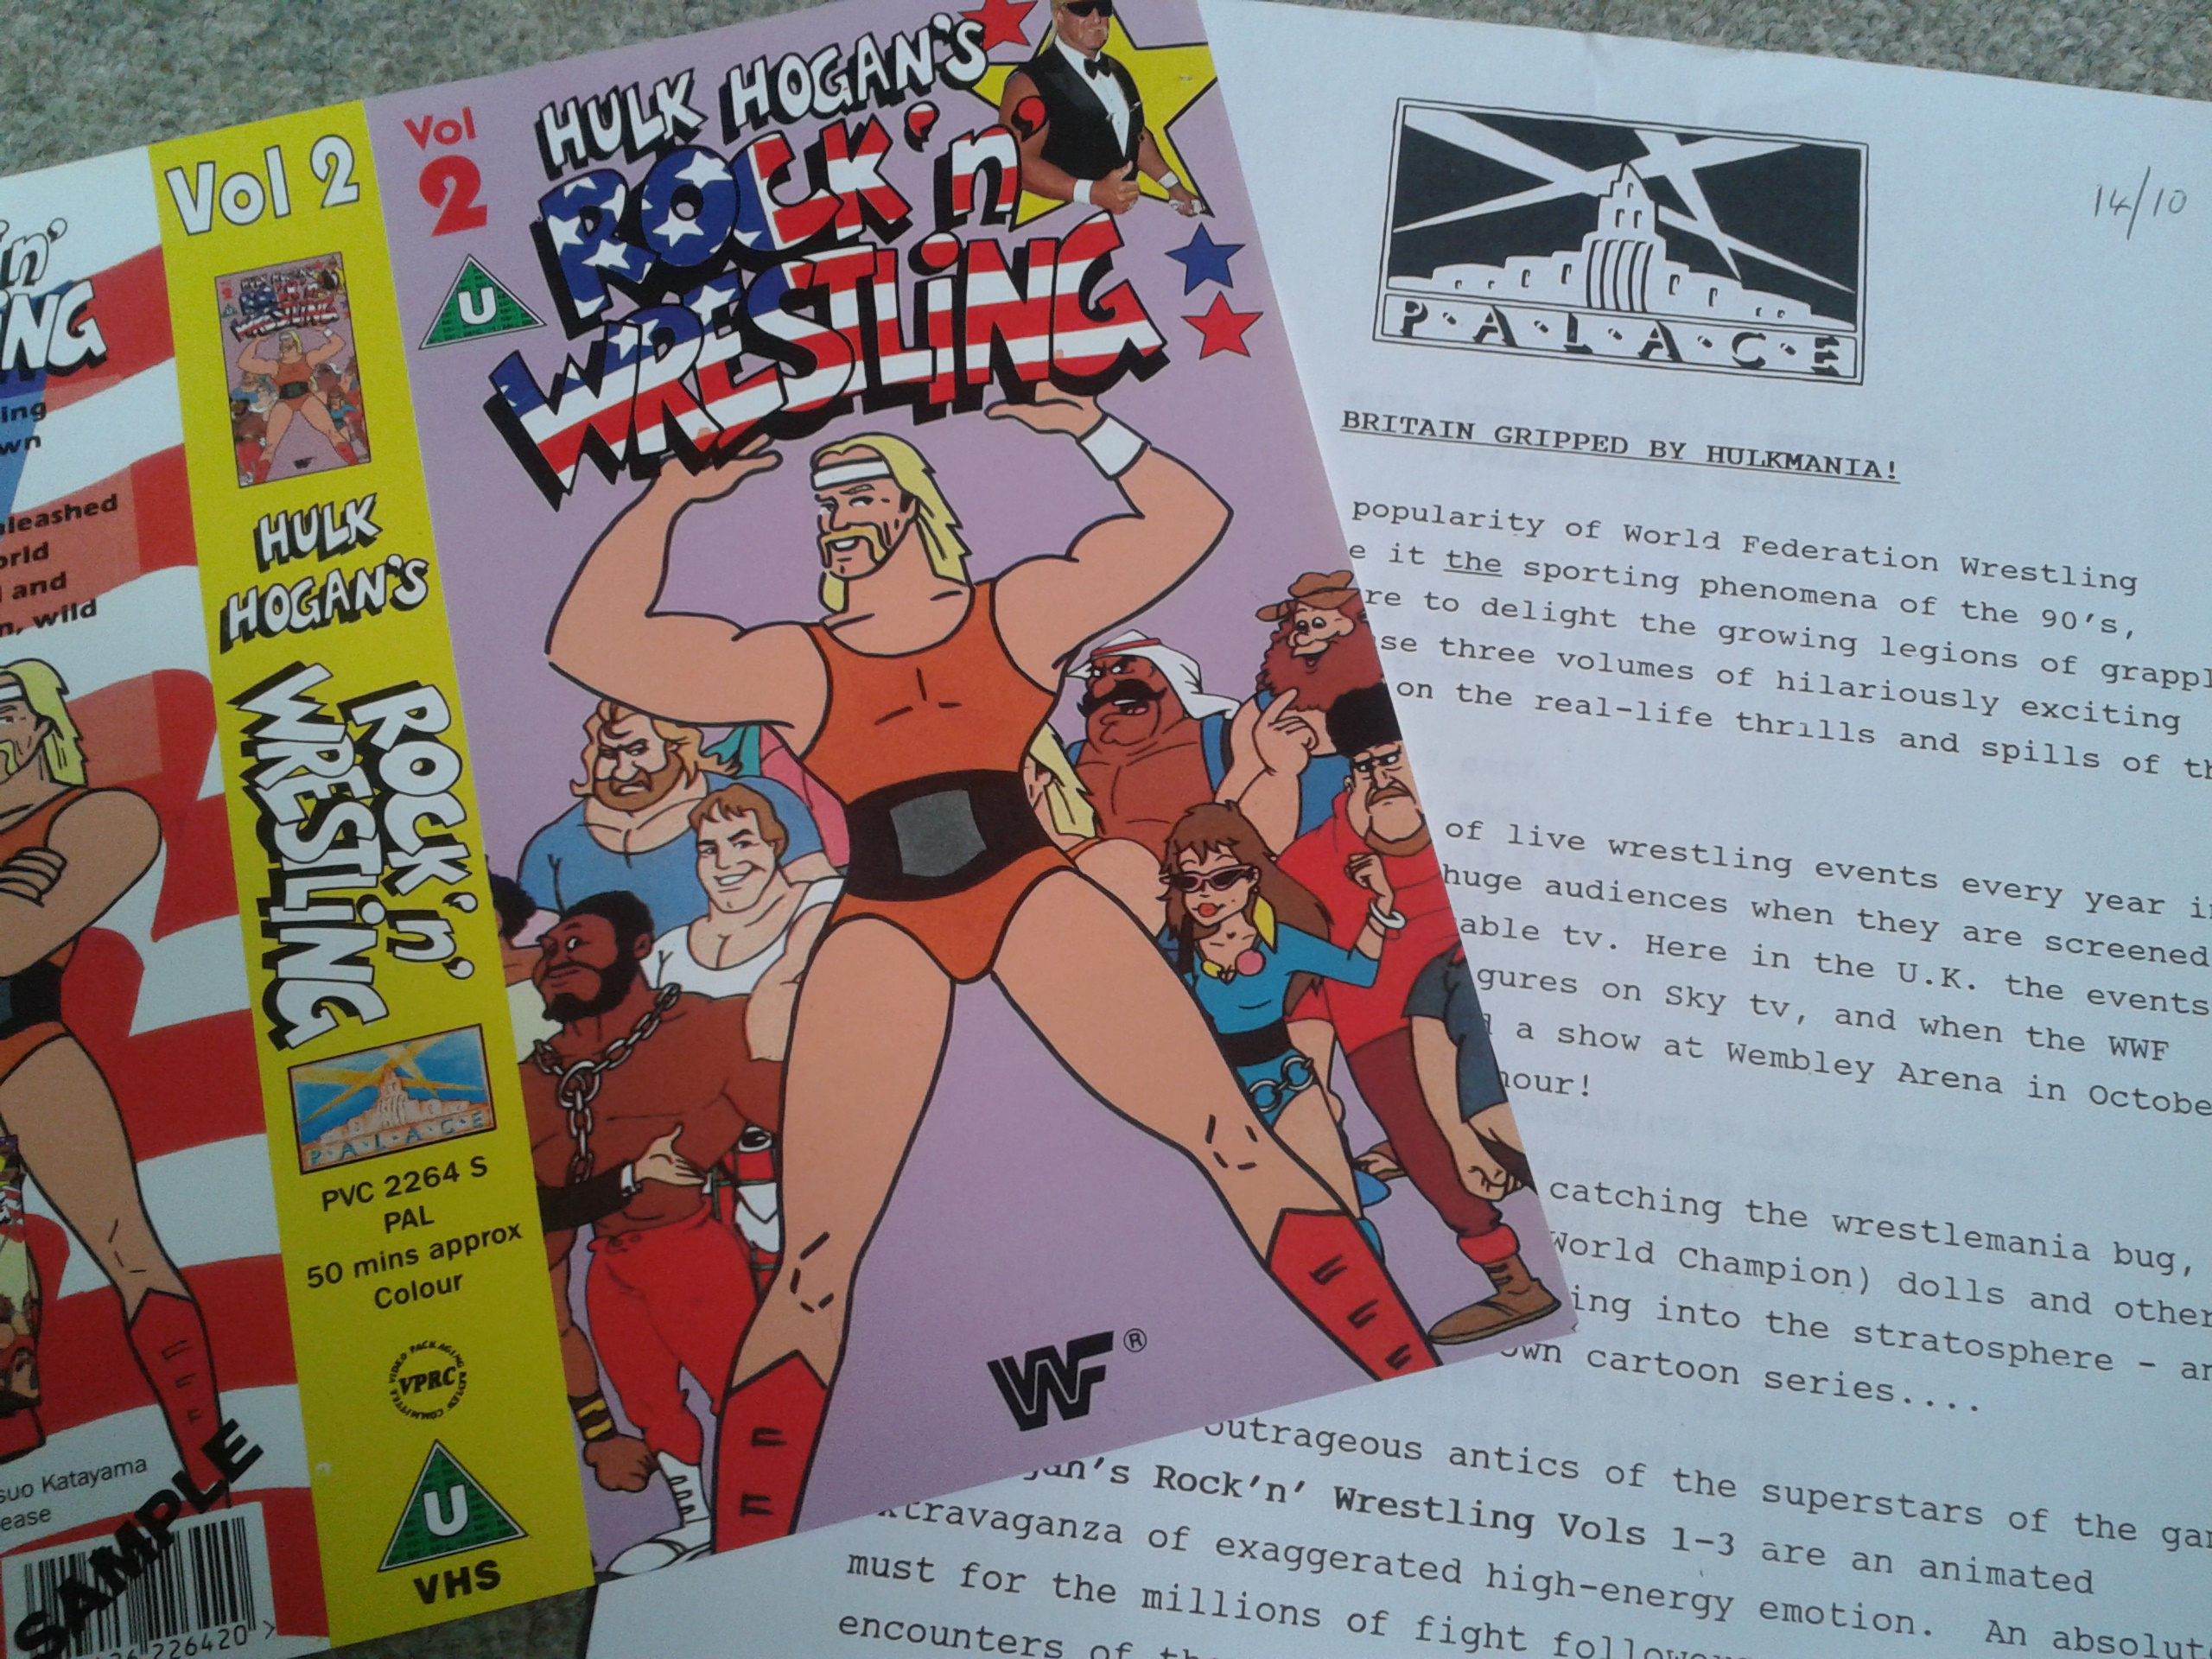 Hulk Hogan Cartoon - VHS Promo Sleeve